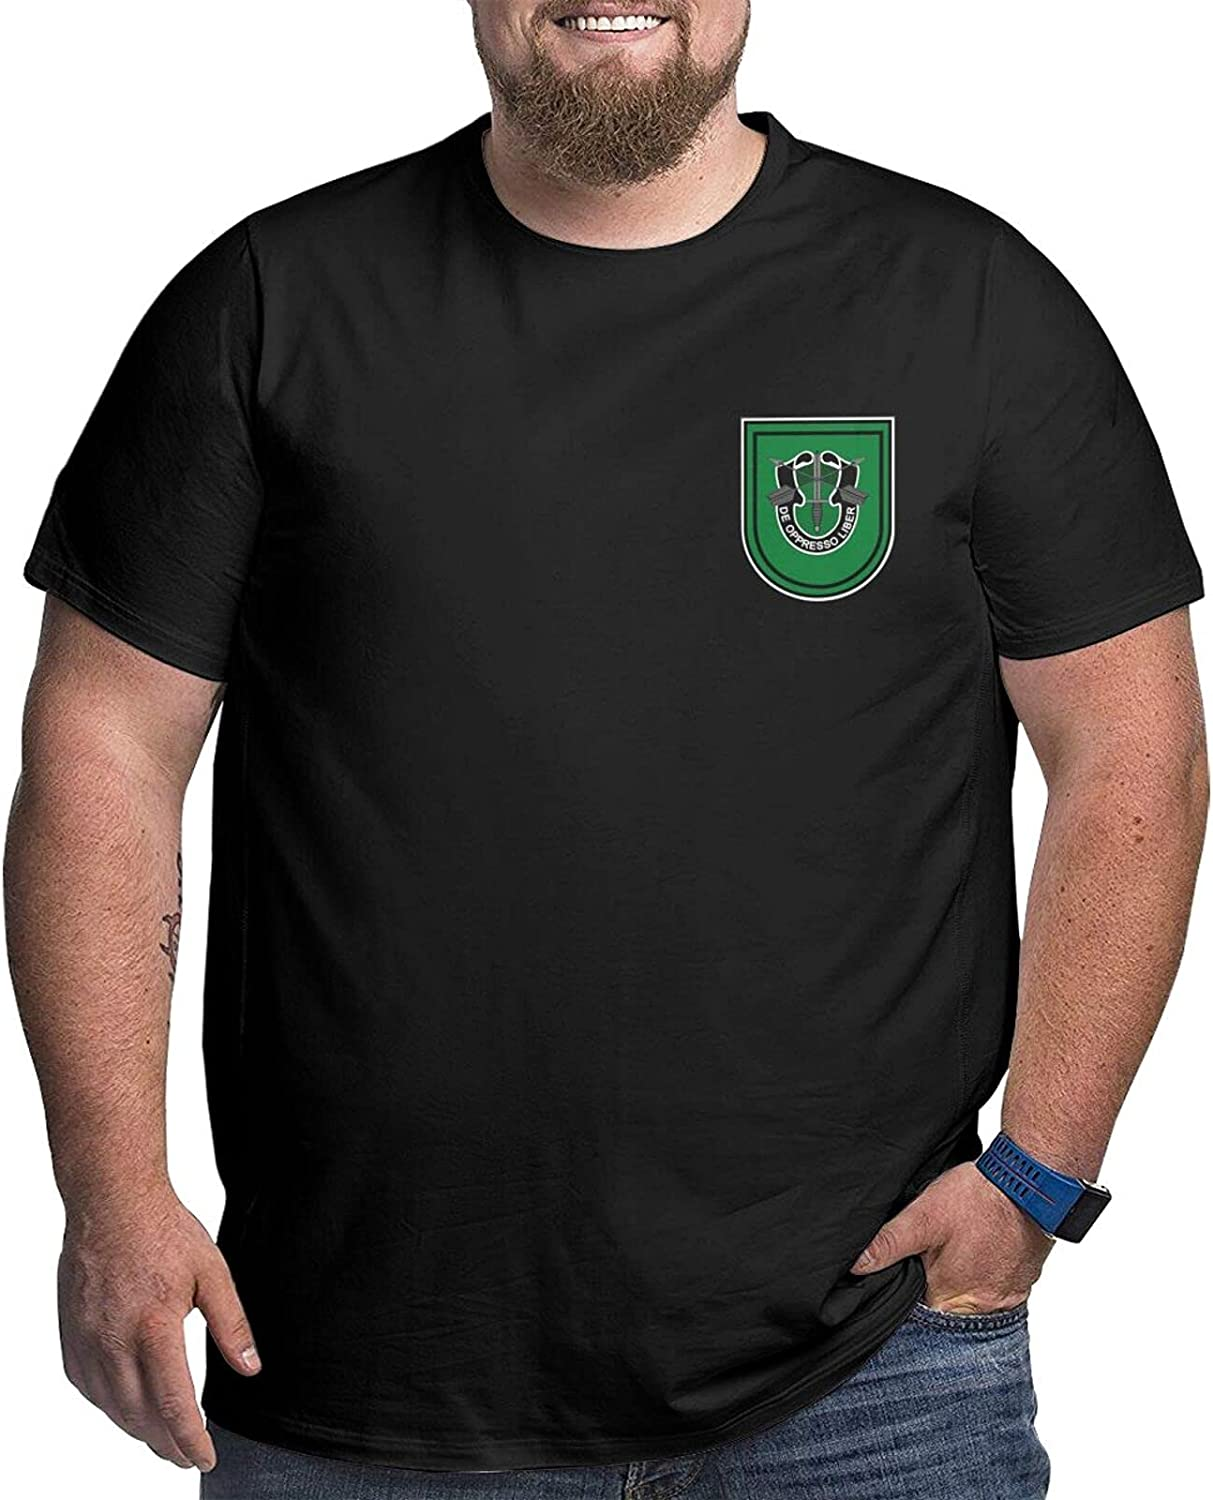 U S Army Flash 10th Special Forces Group Man's Simple Big Size Summer Outdoor Short Sleeve Round Collar Tee